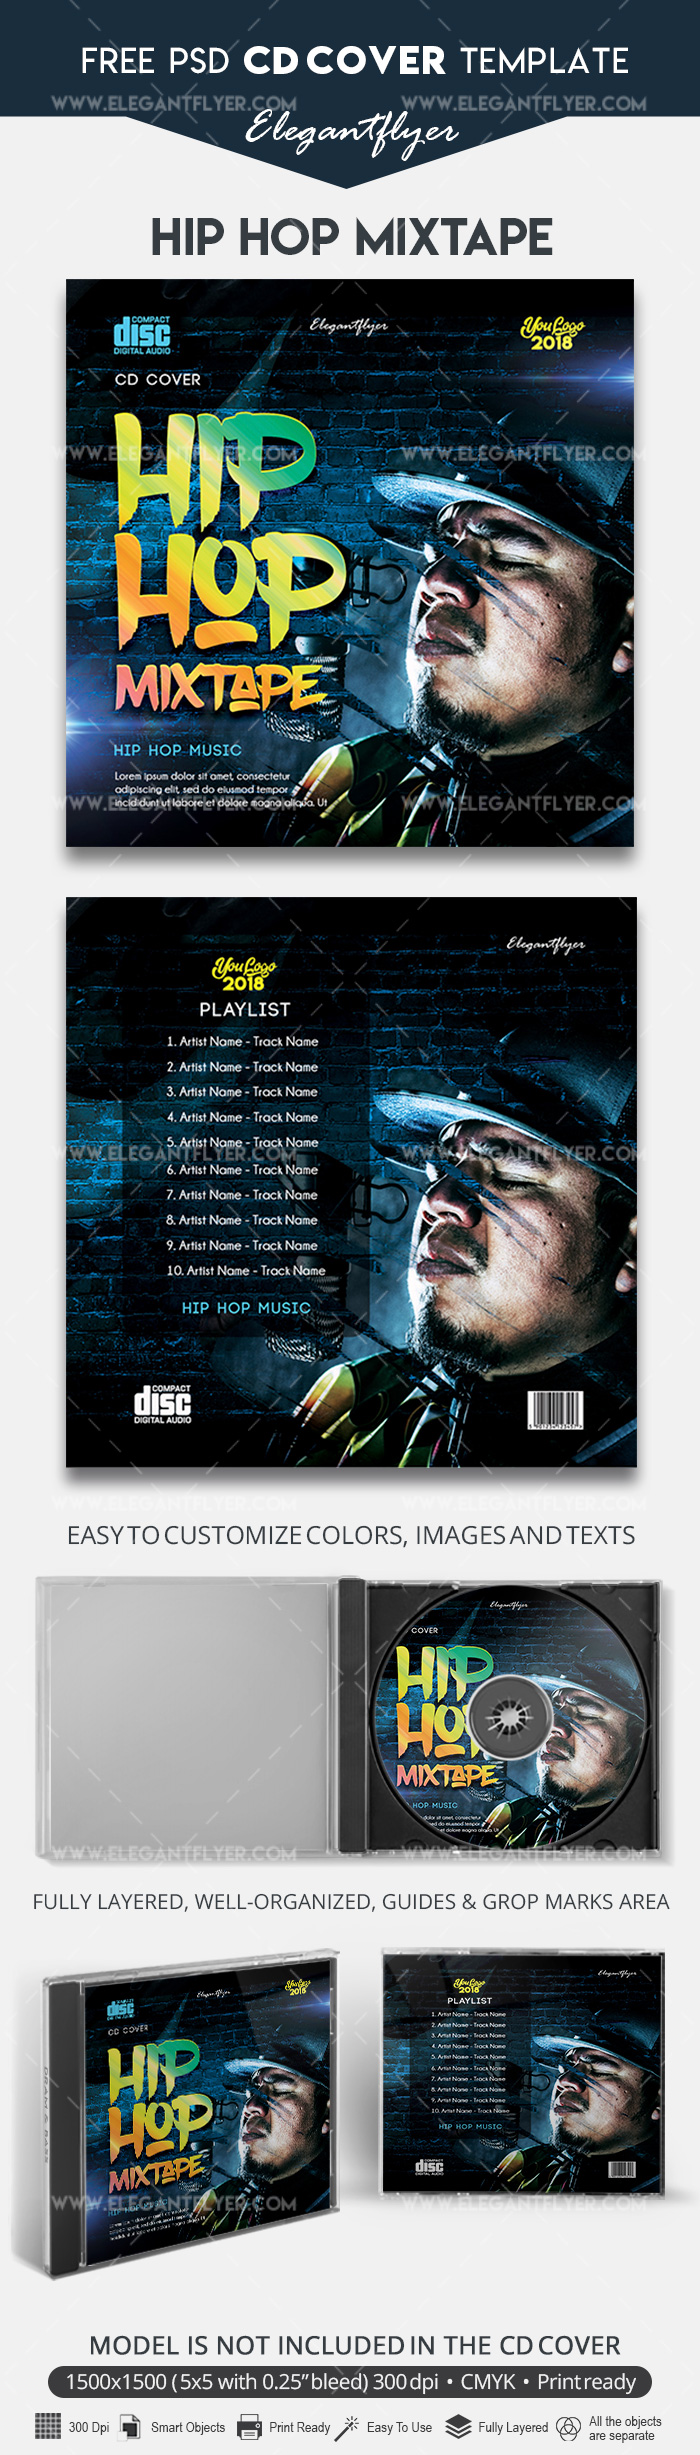 Hip Hop Mixtape – Free CD Cover Template